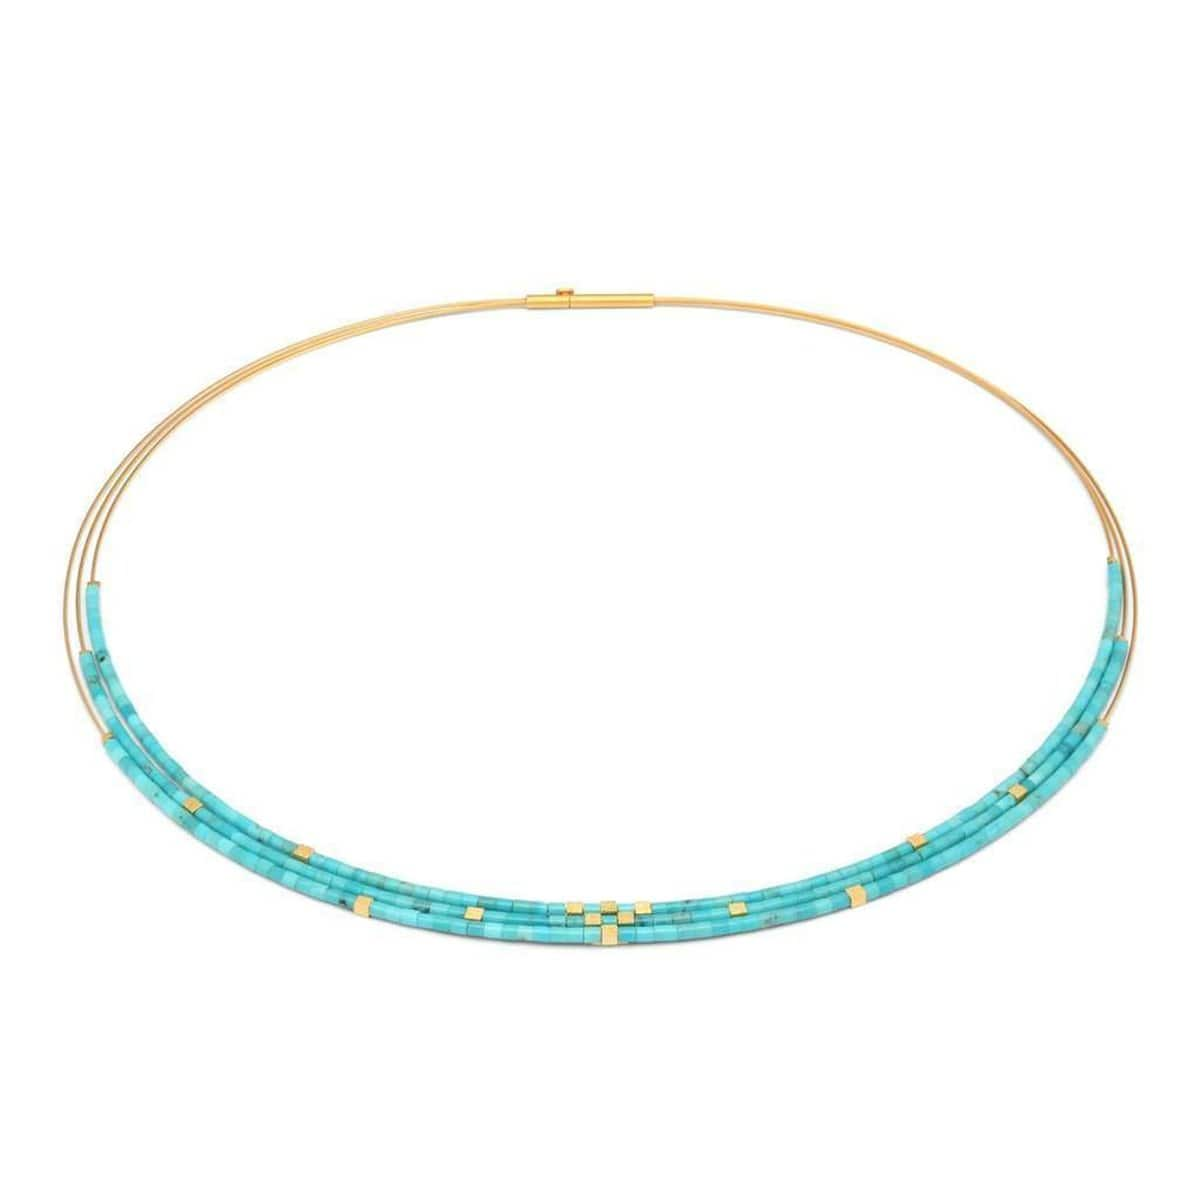 Cuvi Turquoise Necklace - 85454256-Bernd Wolf-Renee Taylor Gallery